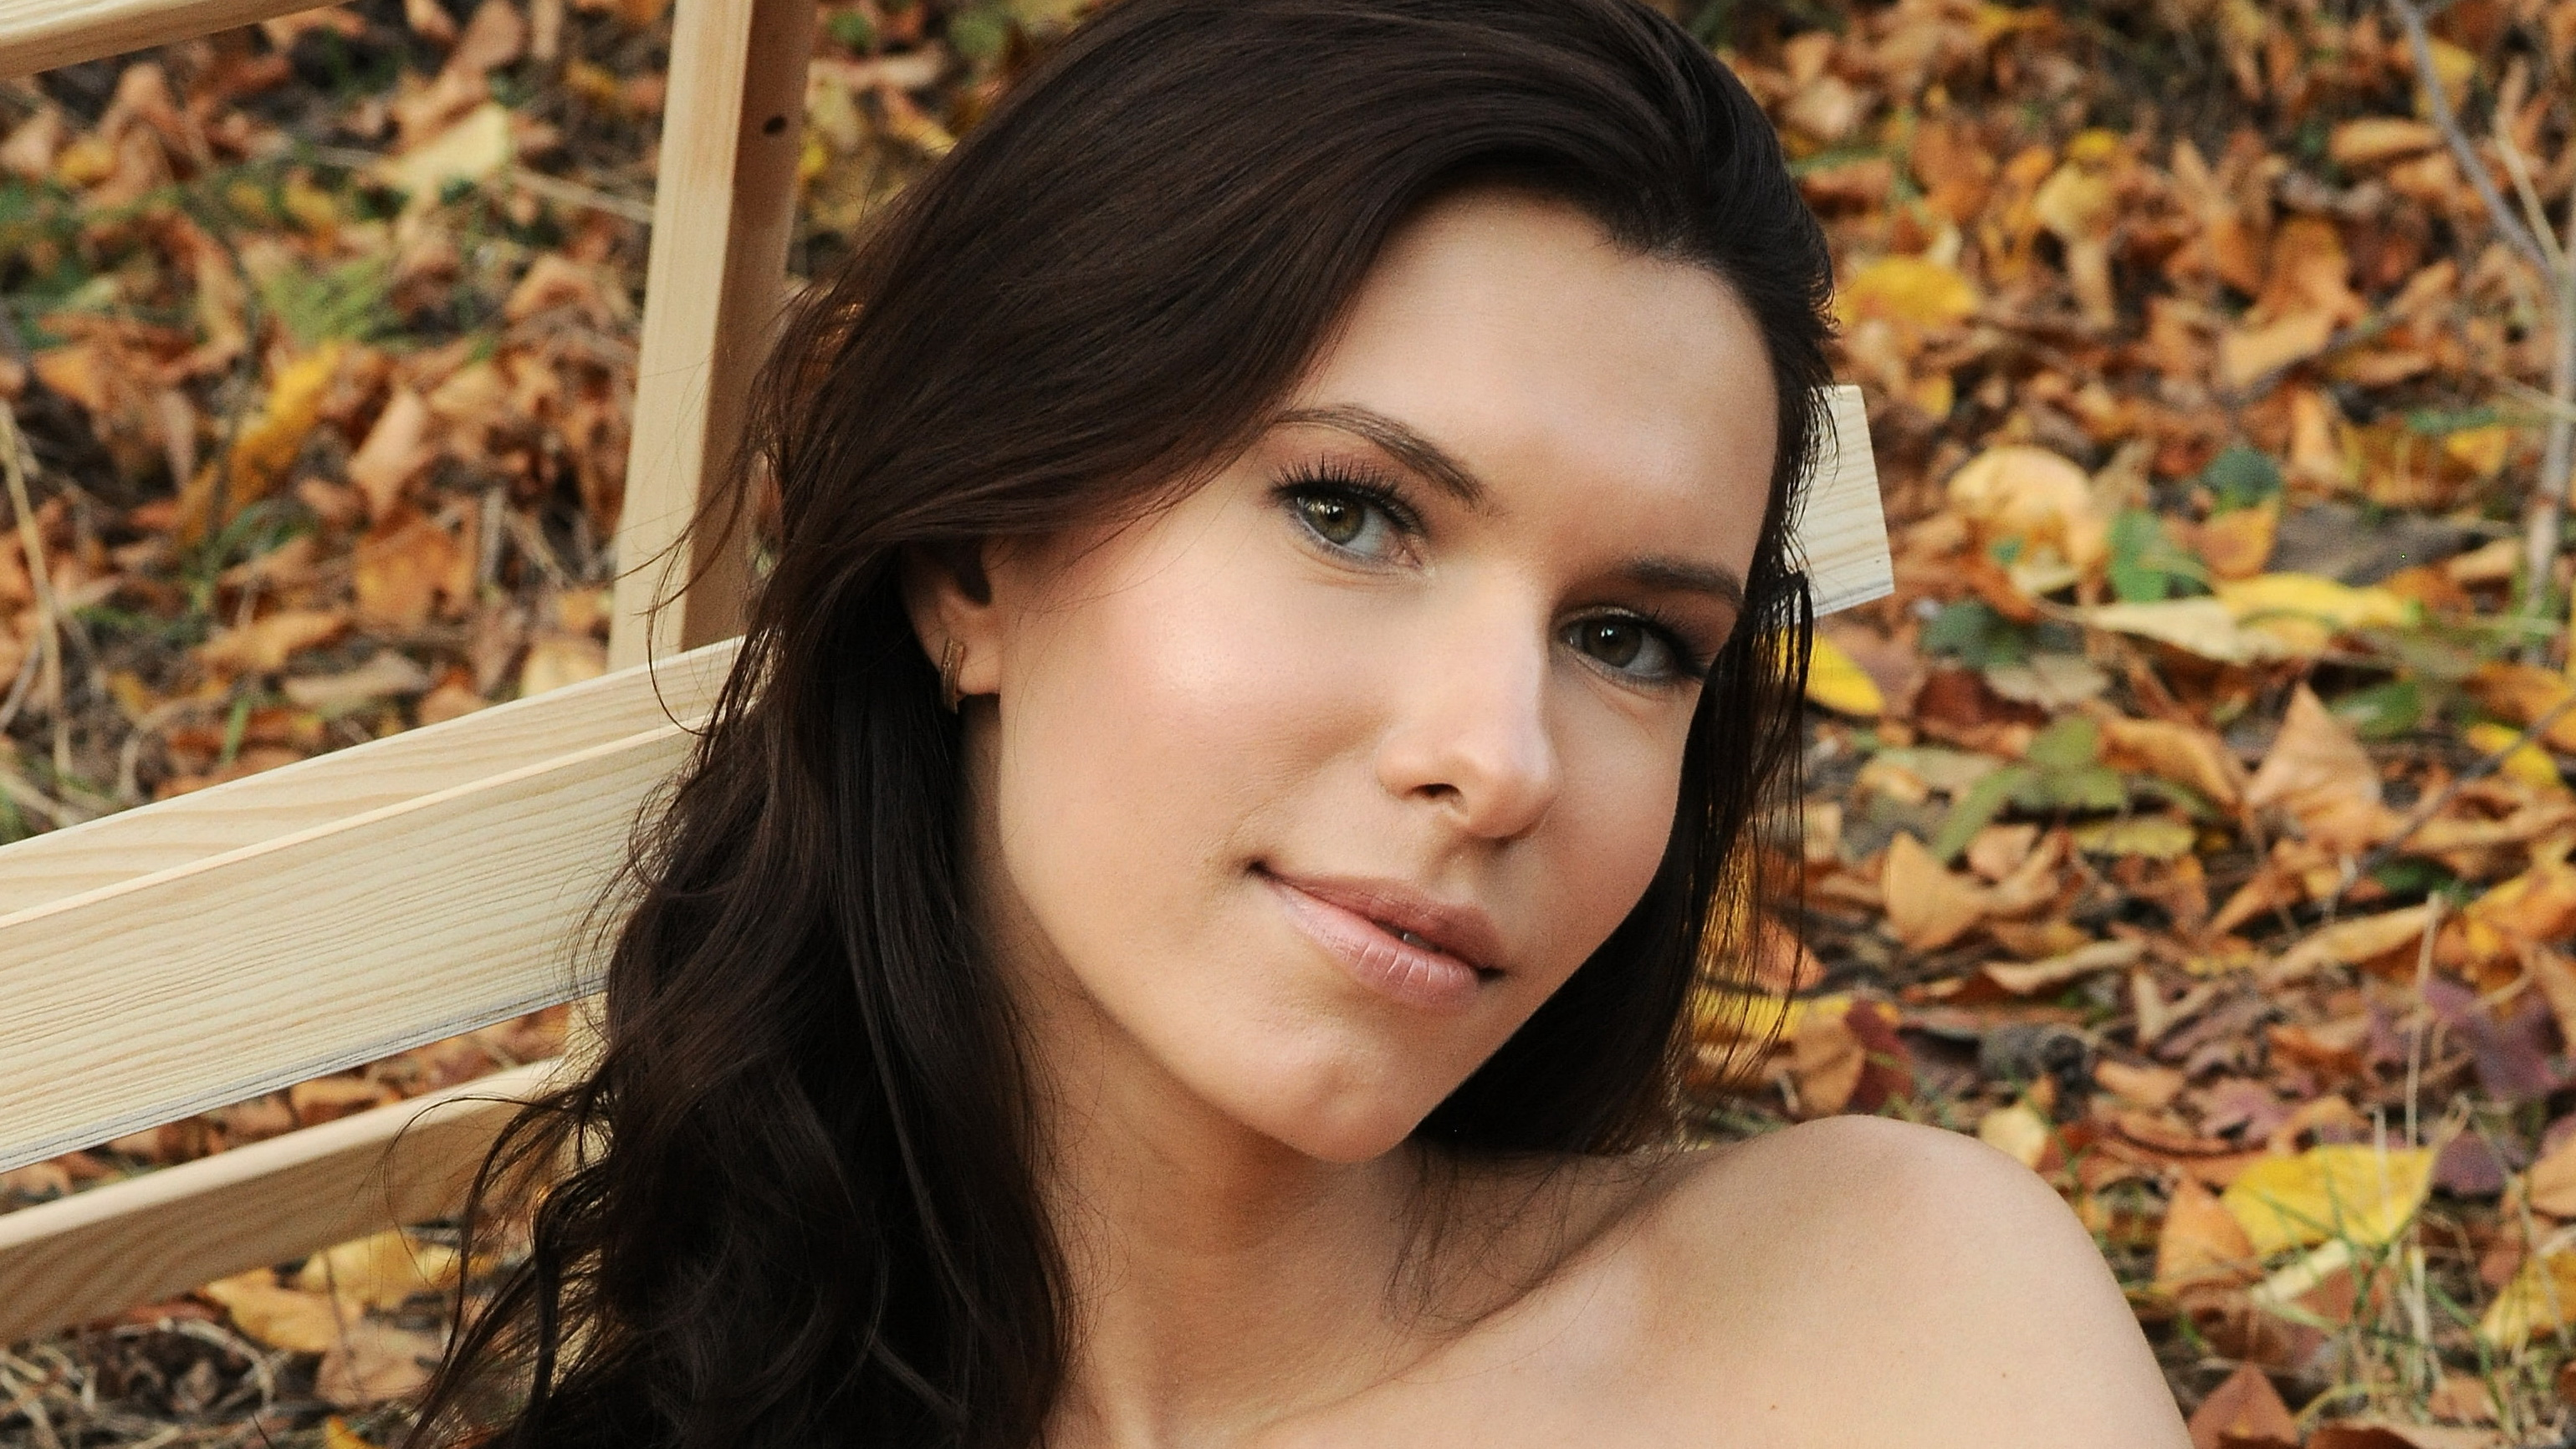 Download photo 3080x1733, brunette, nude, forest, autumn